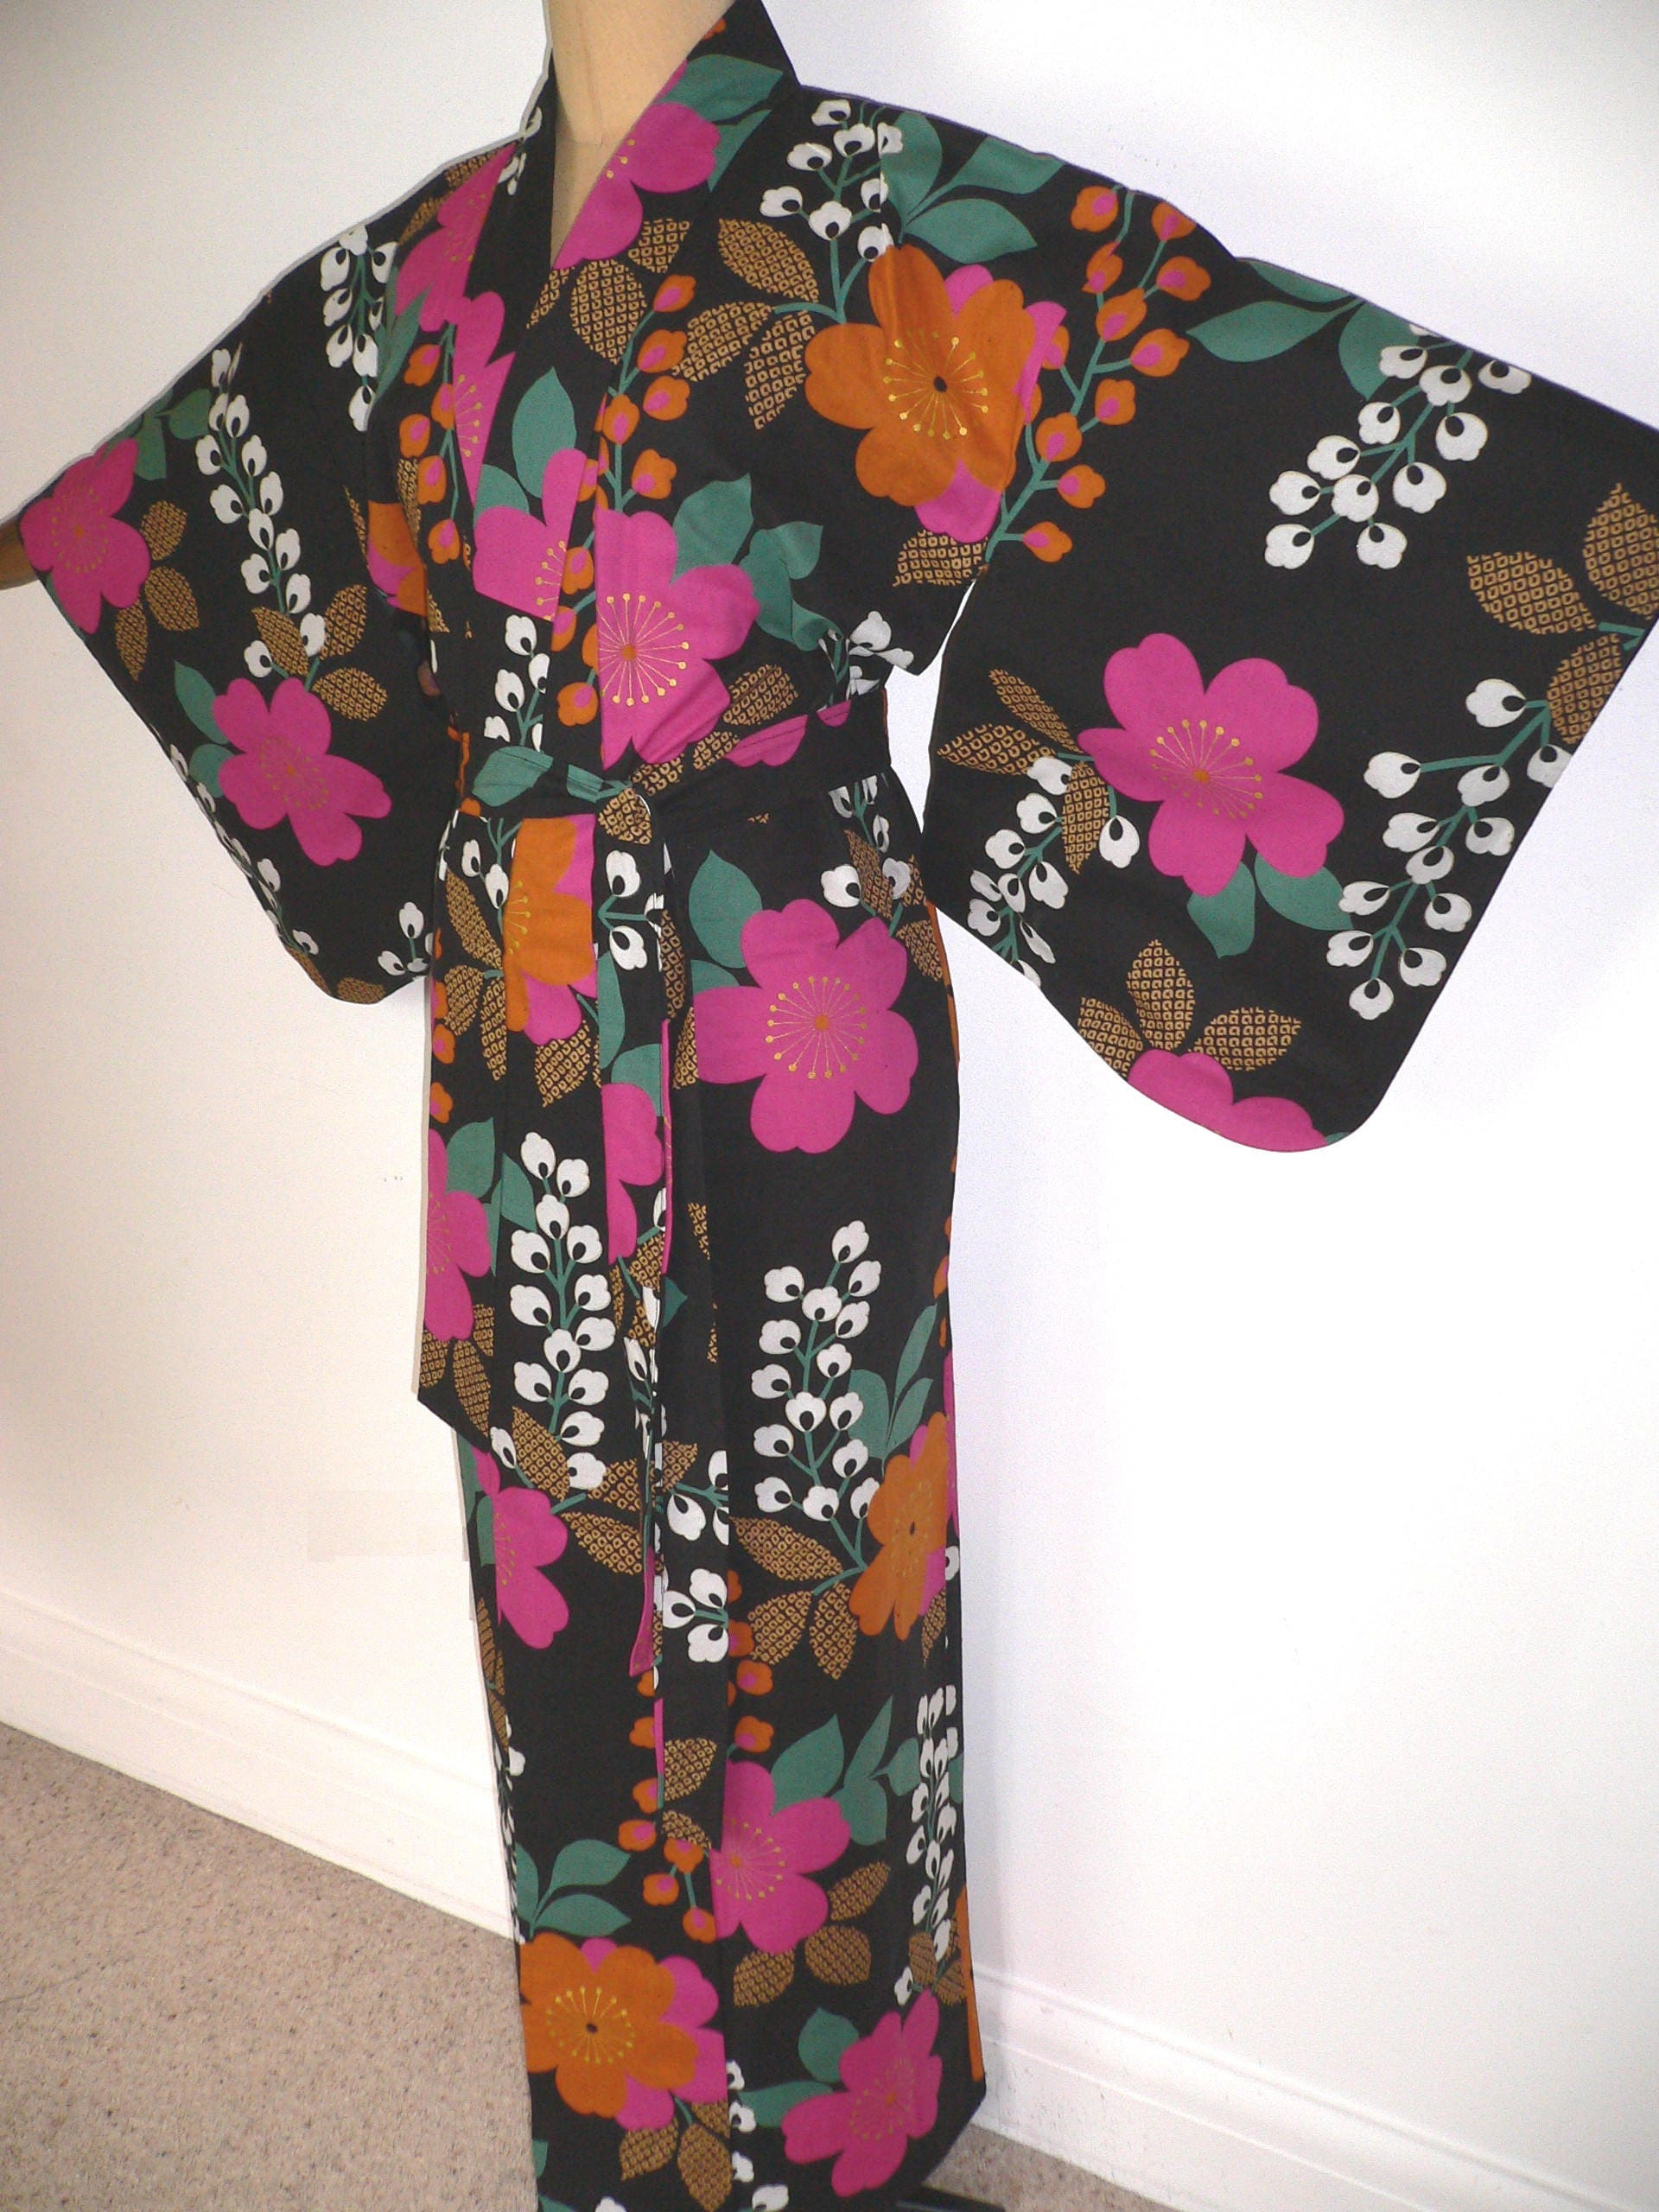 Vintage Japanese Authentic Yukata Cotton Kimono Robe Dressing Gown Shortened to Create a Matching Belt Black with Colourful Retro Flowers